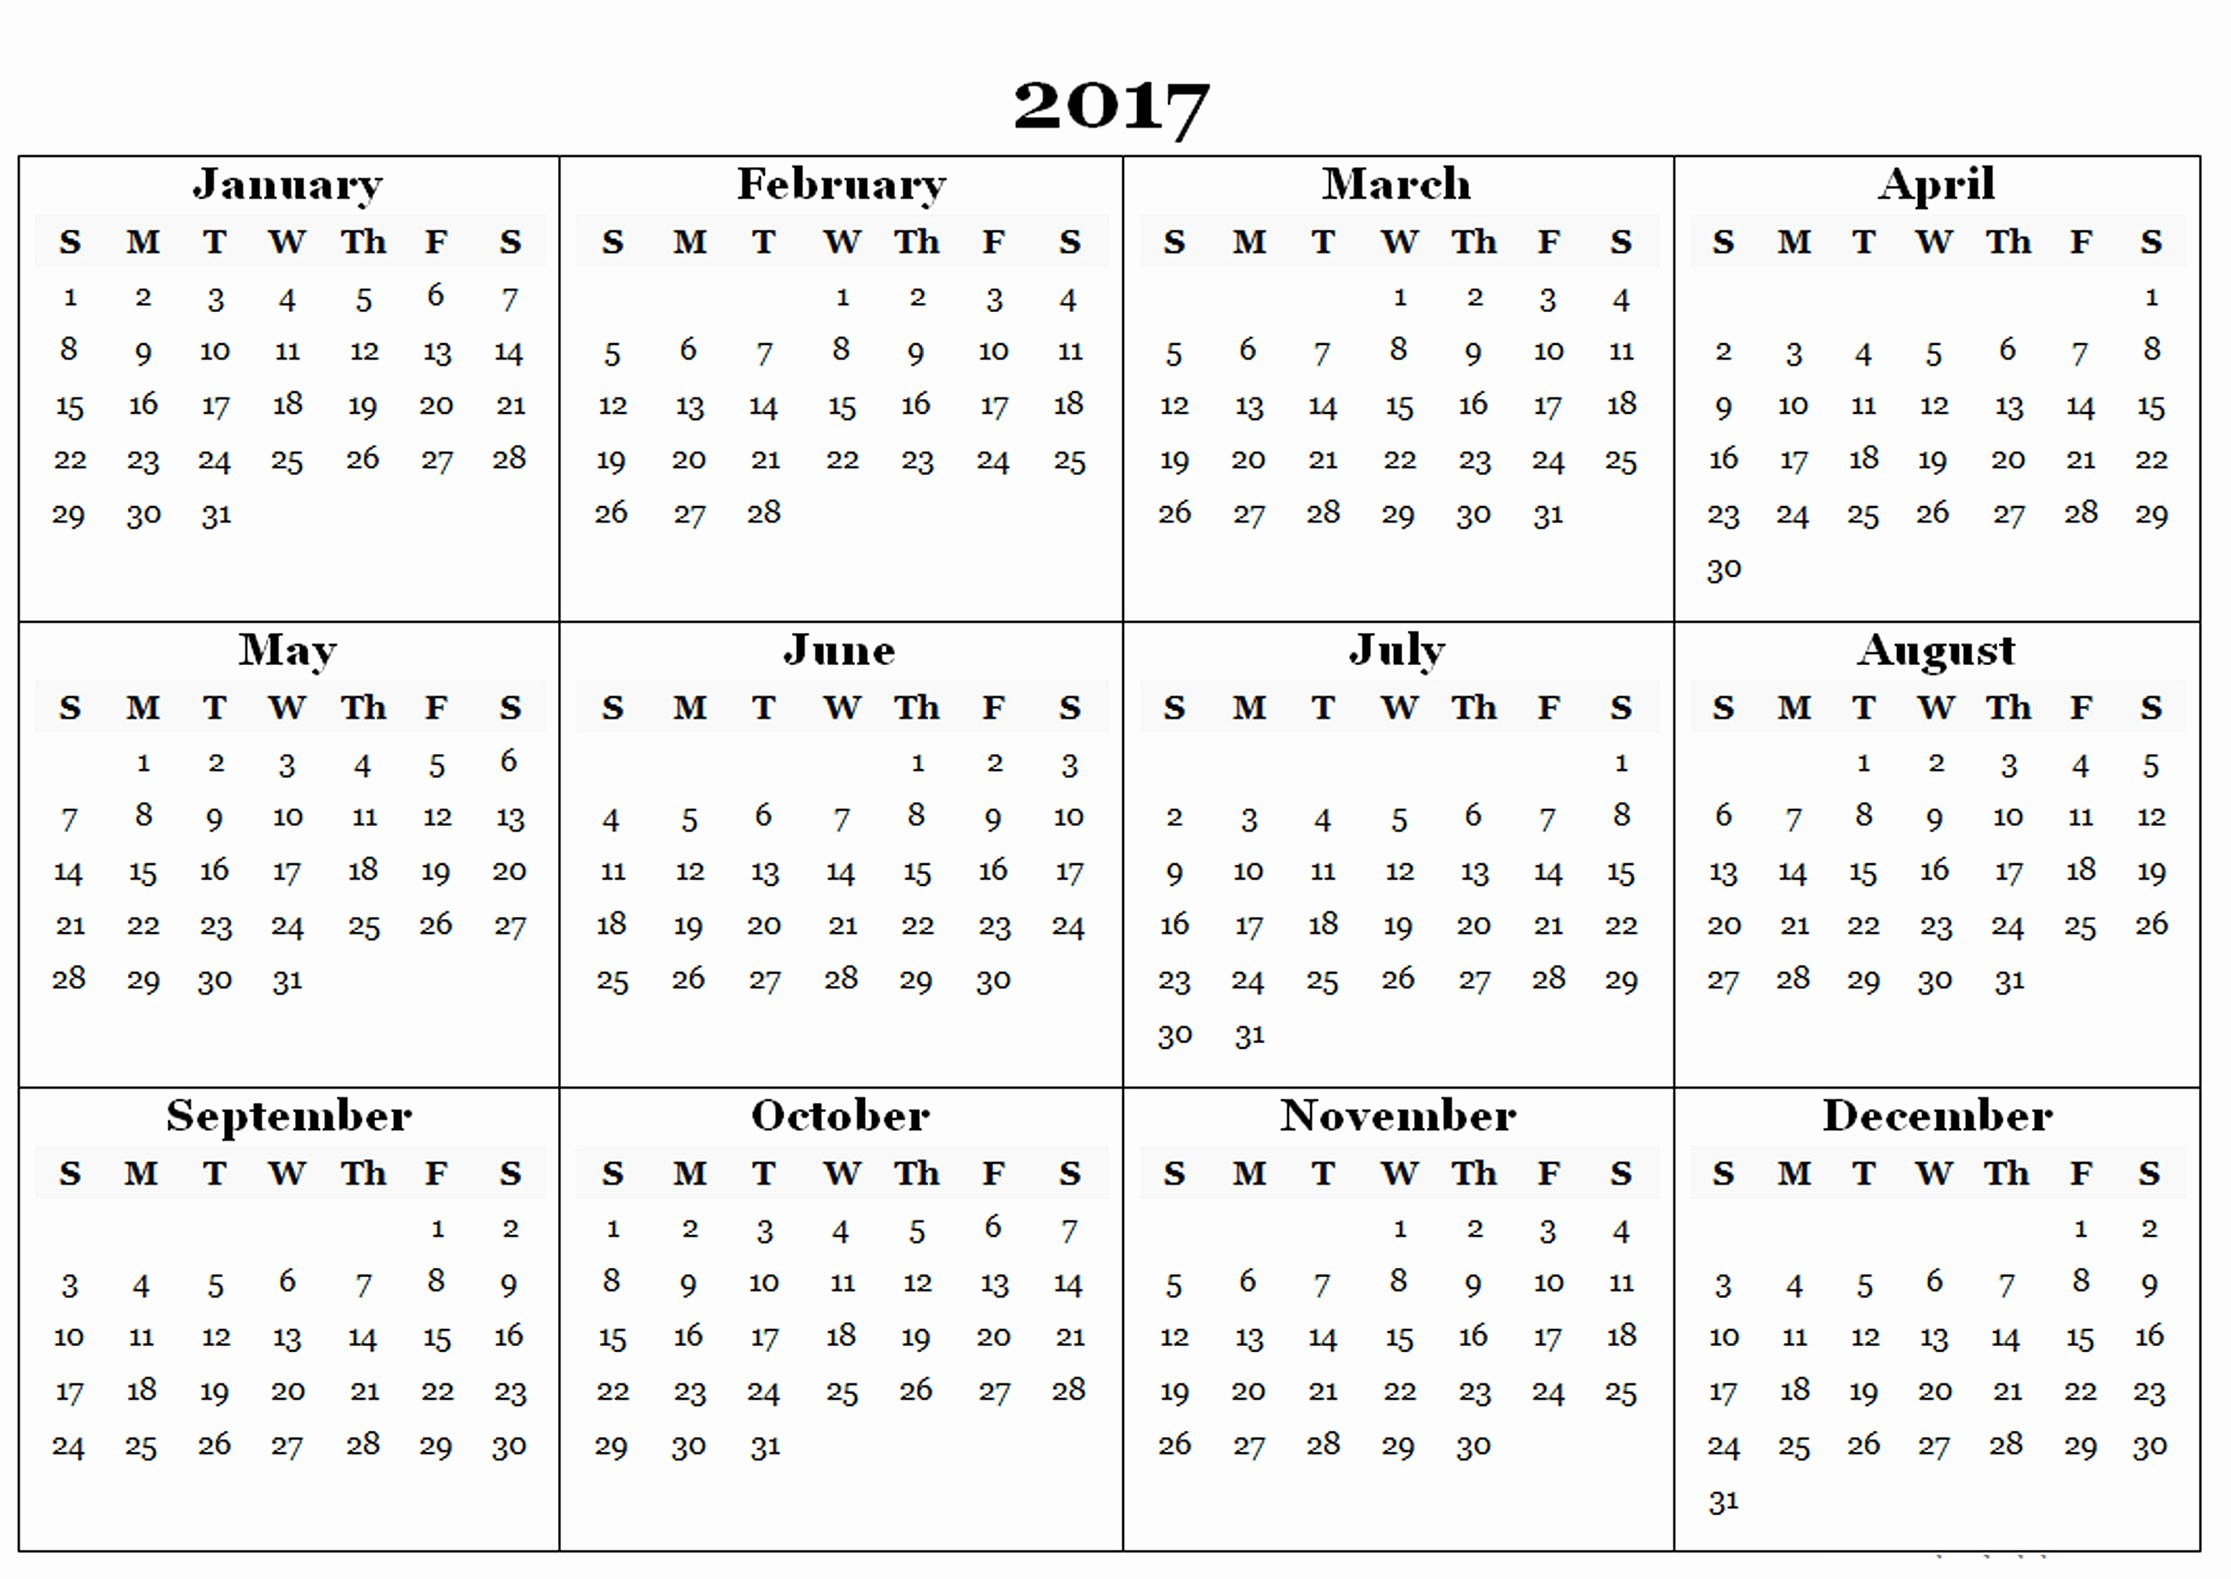 2017 Year Calendar Printable Free Elegant 2017 Calendar Templates and Printable 2017calendar